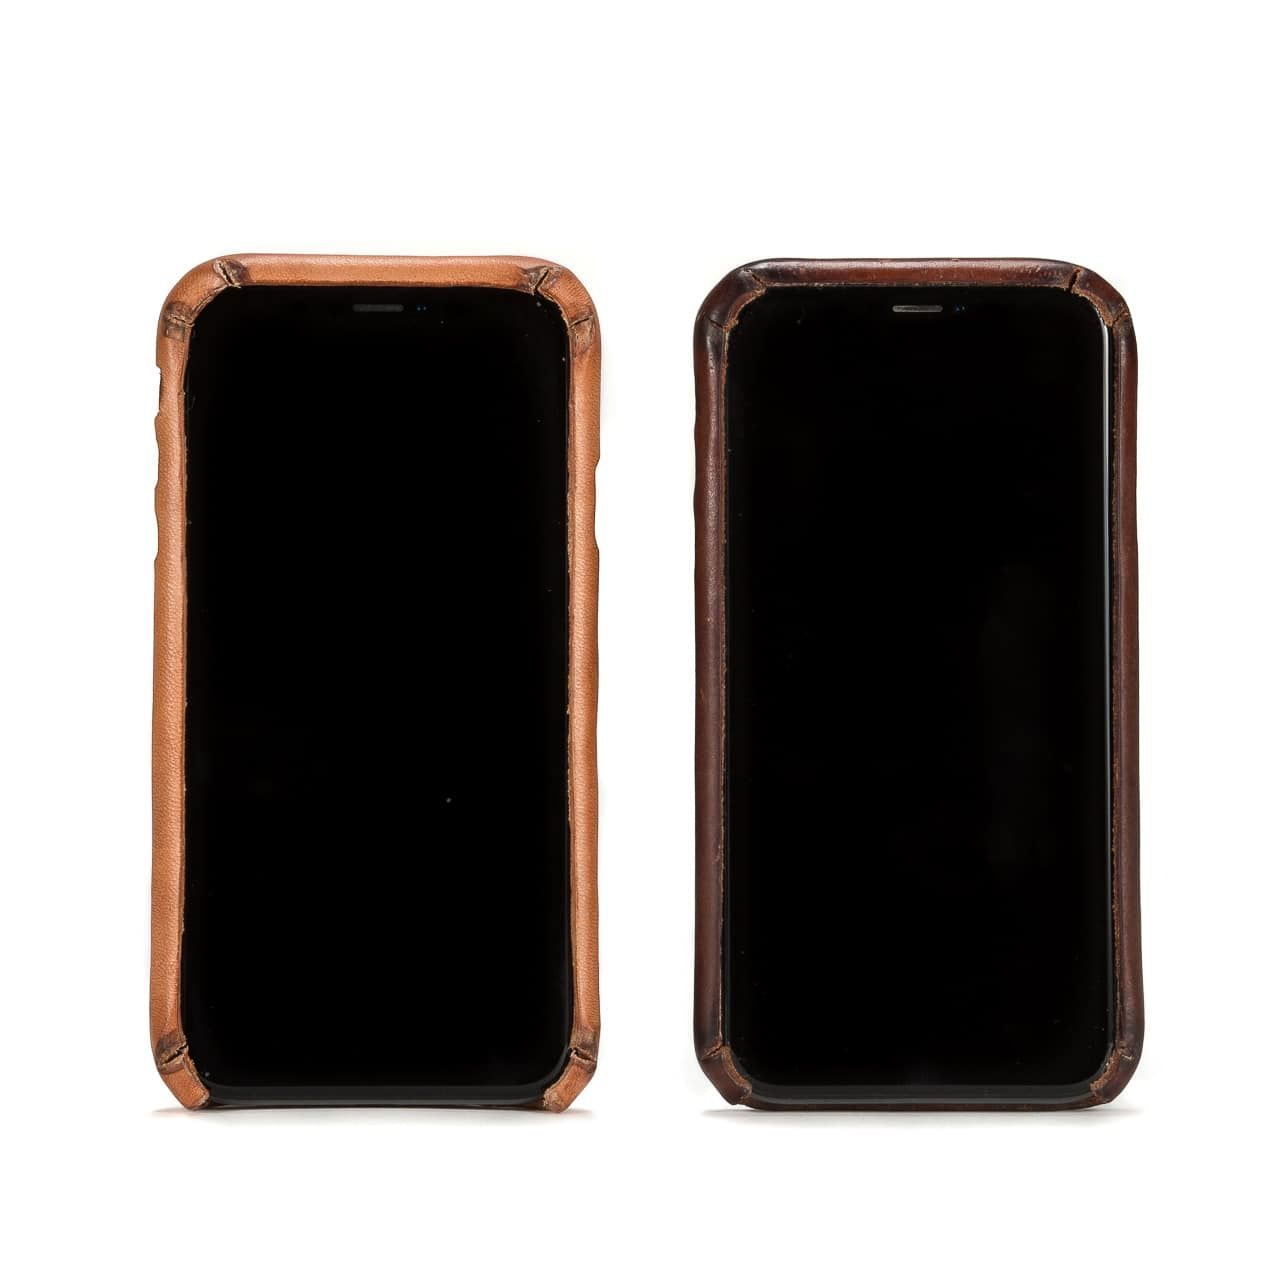 New and Patina'd Boot Leather iPhone Case from the Front Side by Side